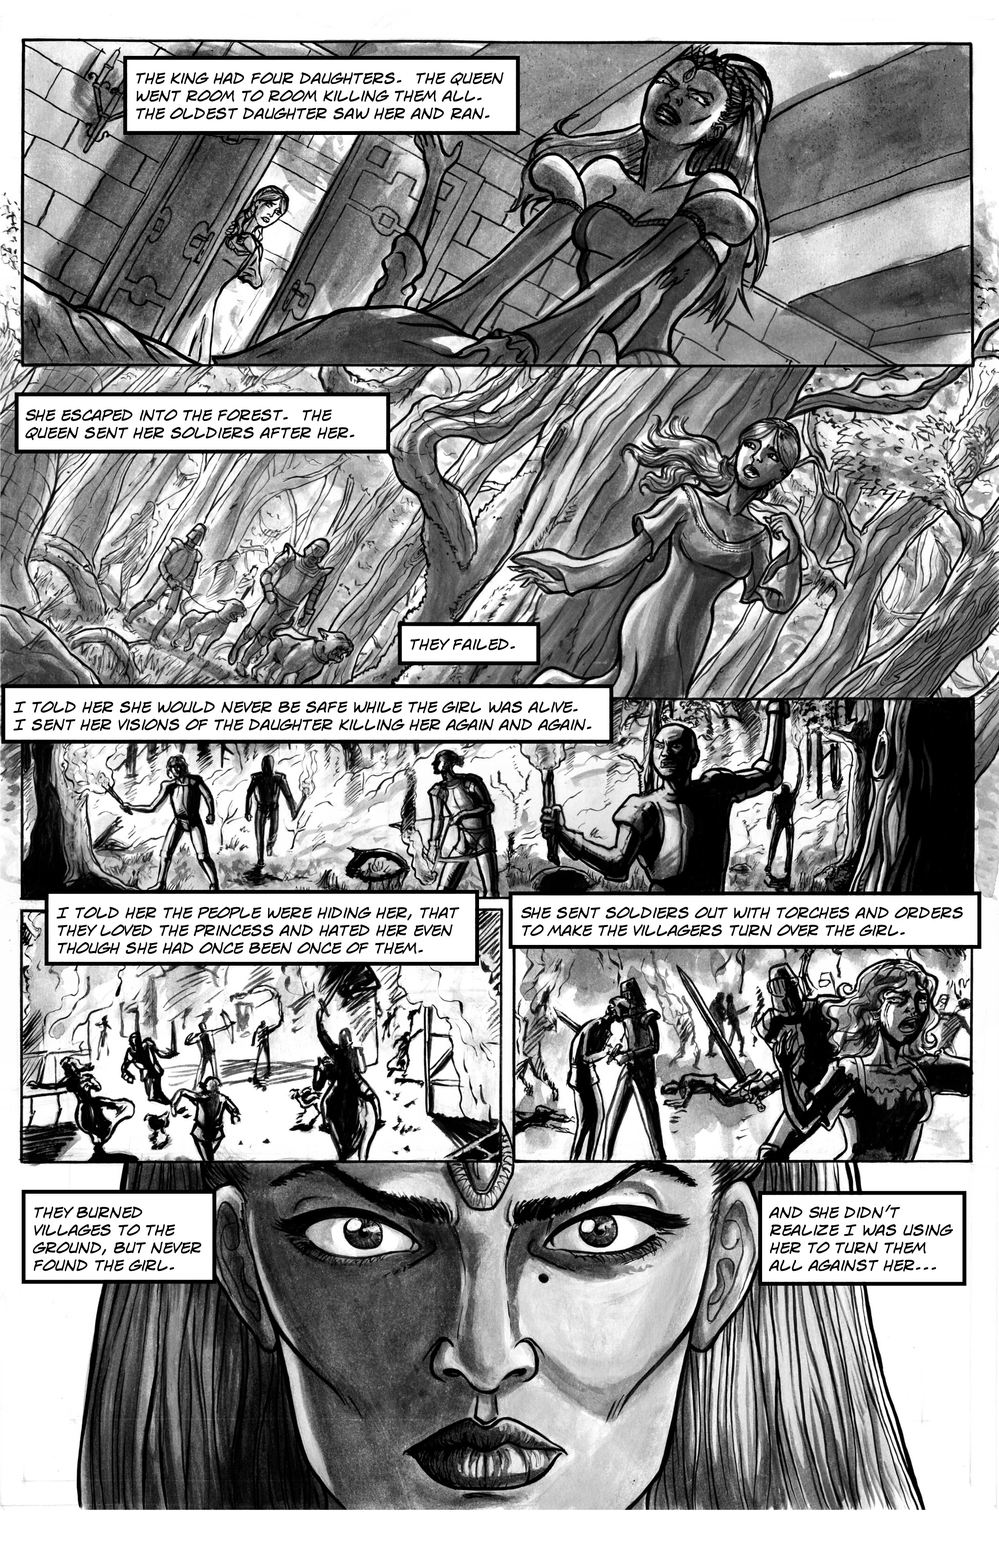 FAIREST page 4 - story 13 in The Book of Lies